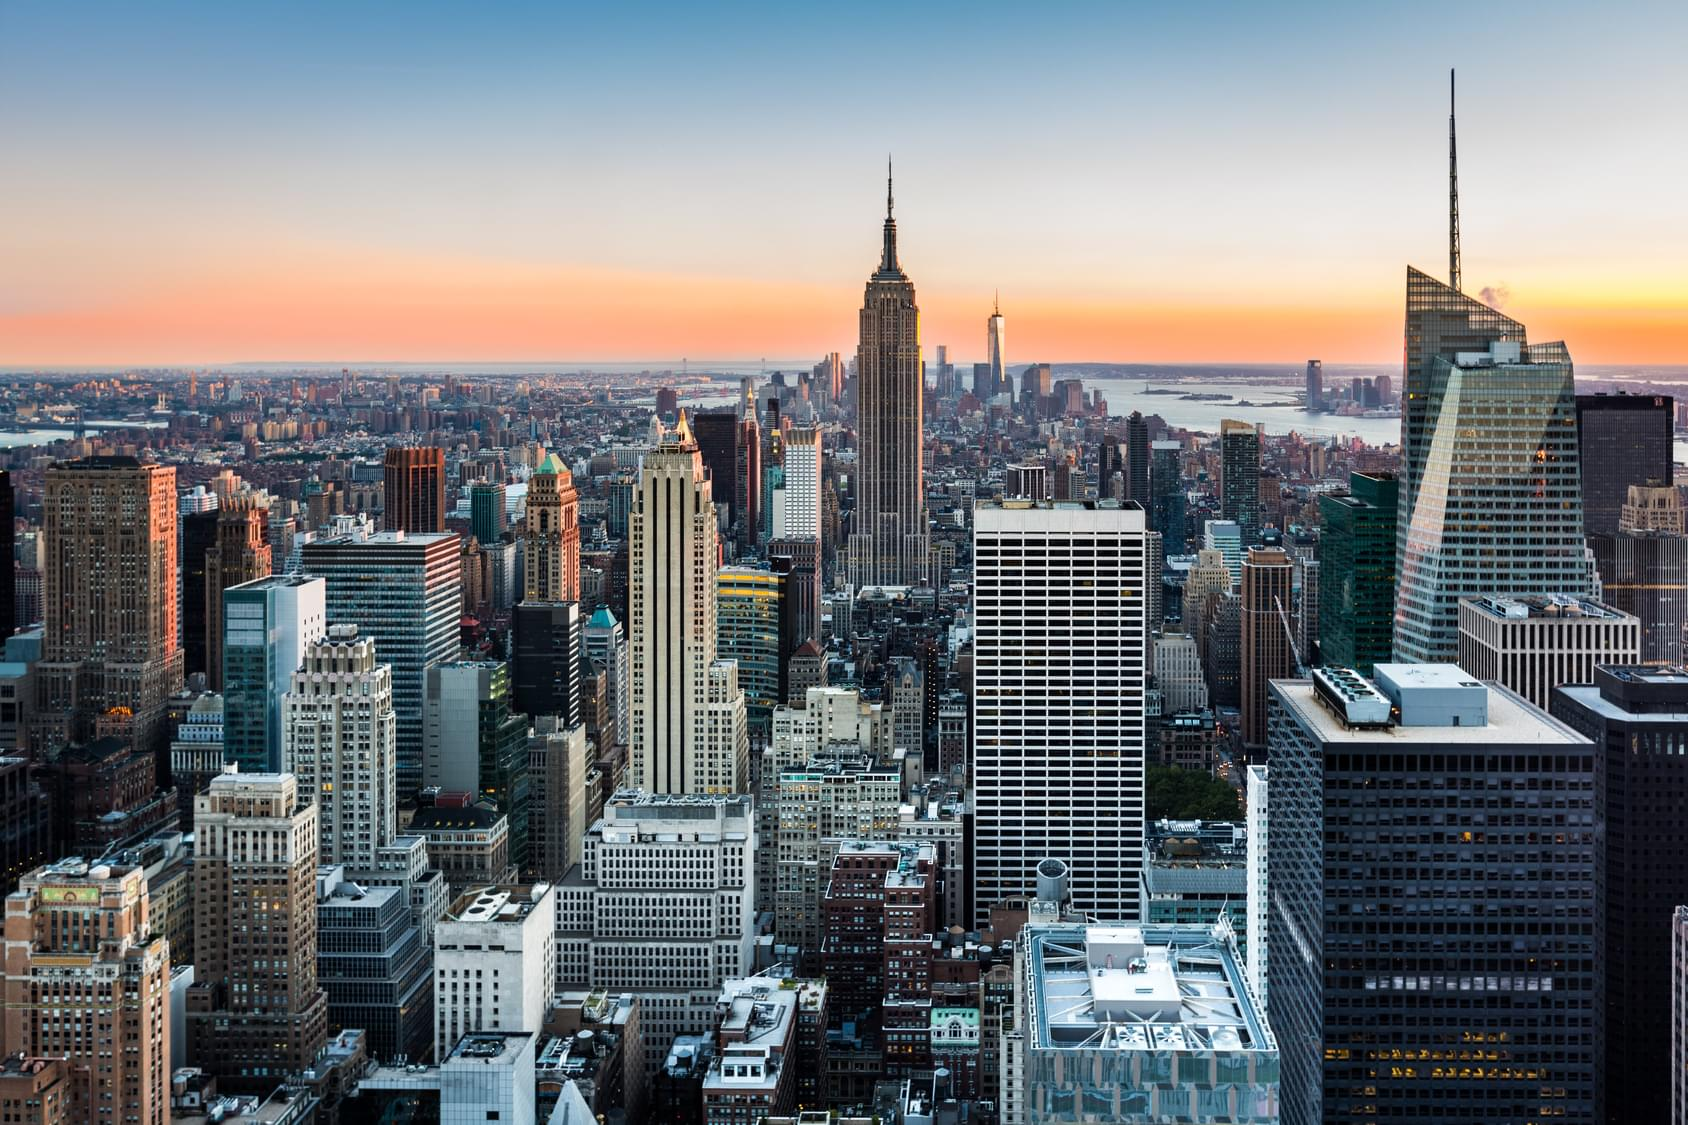 Conference Preview: The iheartmarketing Roadshow takes on New York City